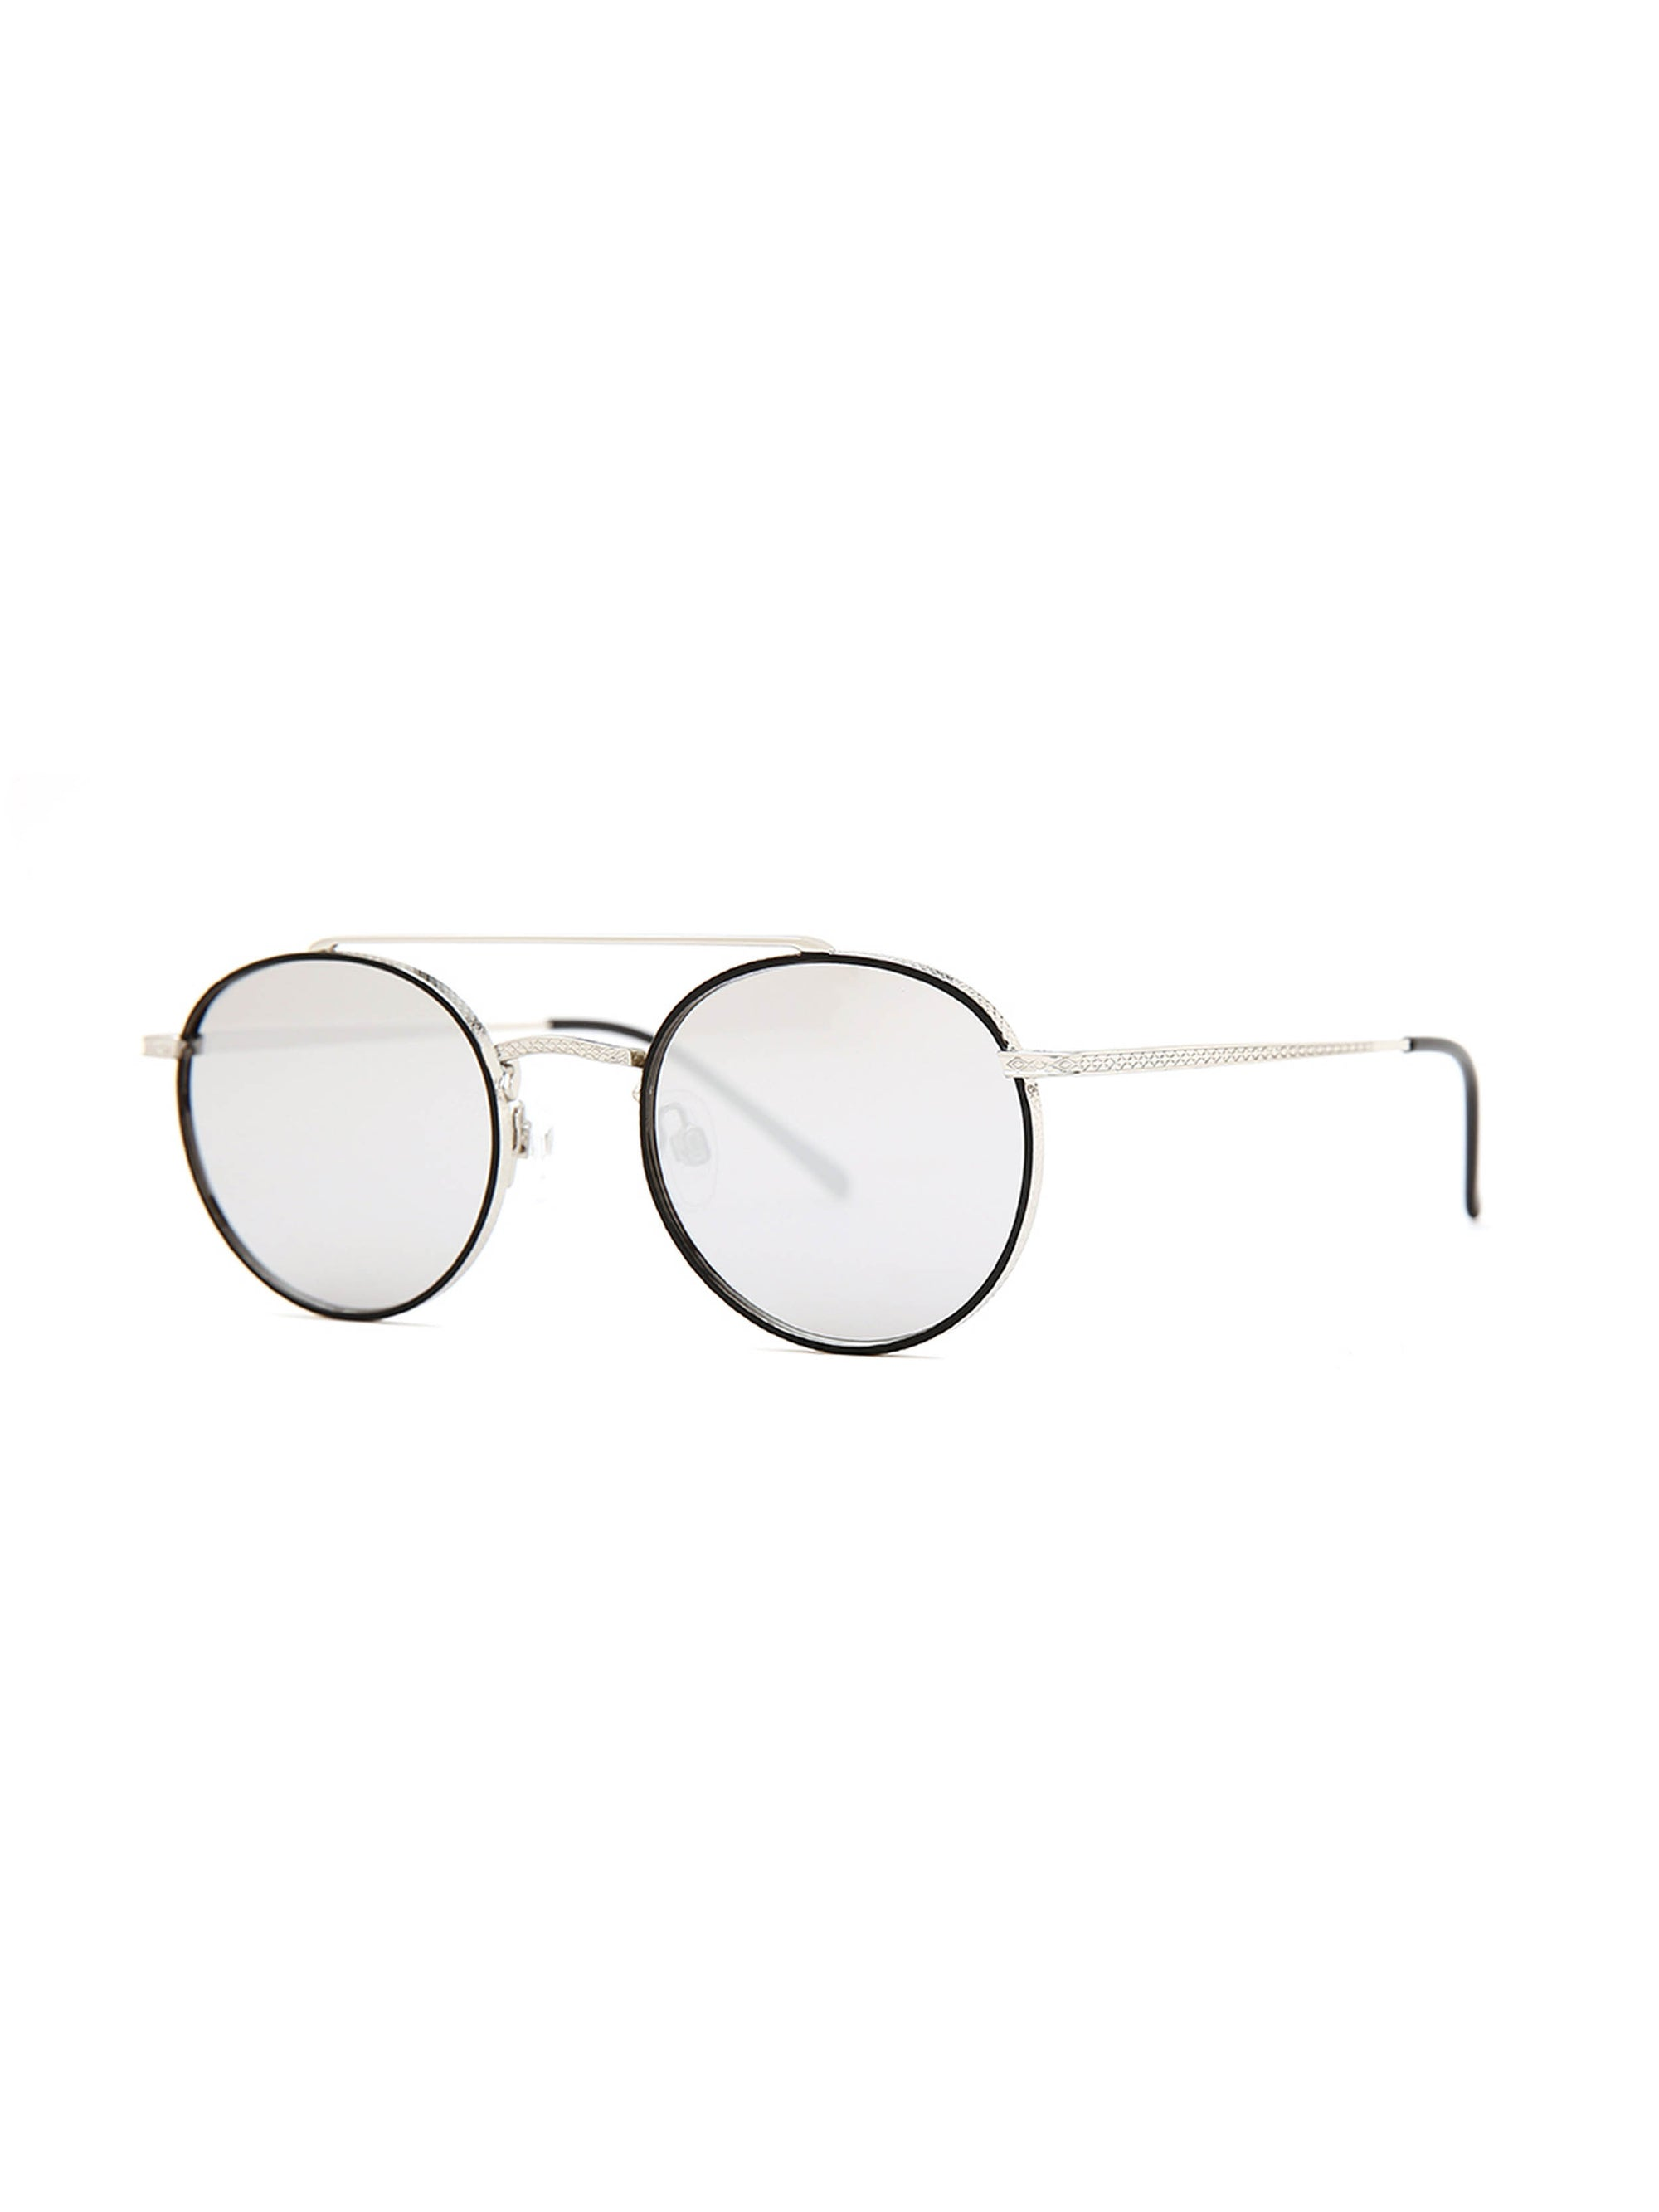 Lentes Carolina Lemke CL6561 10